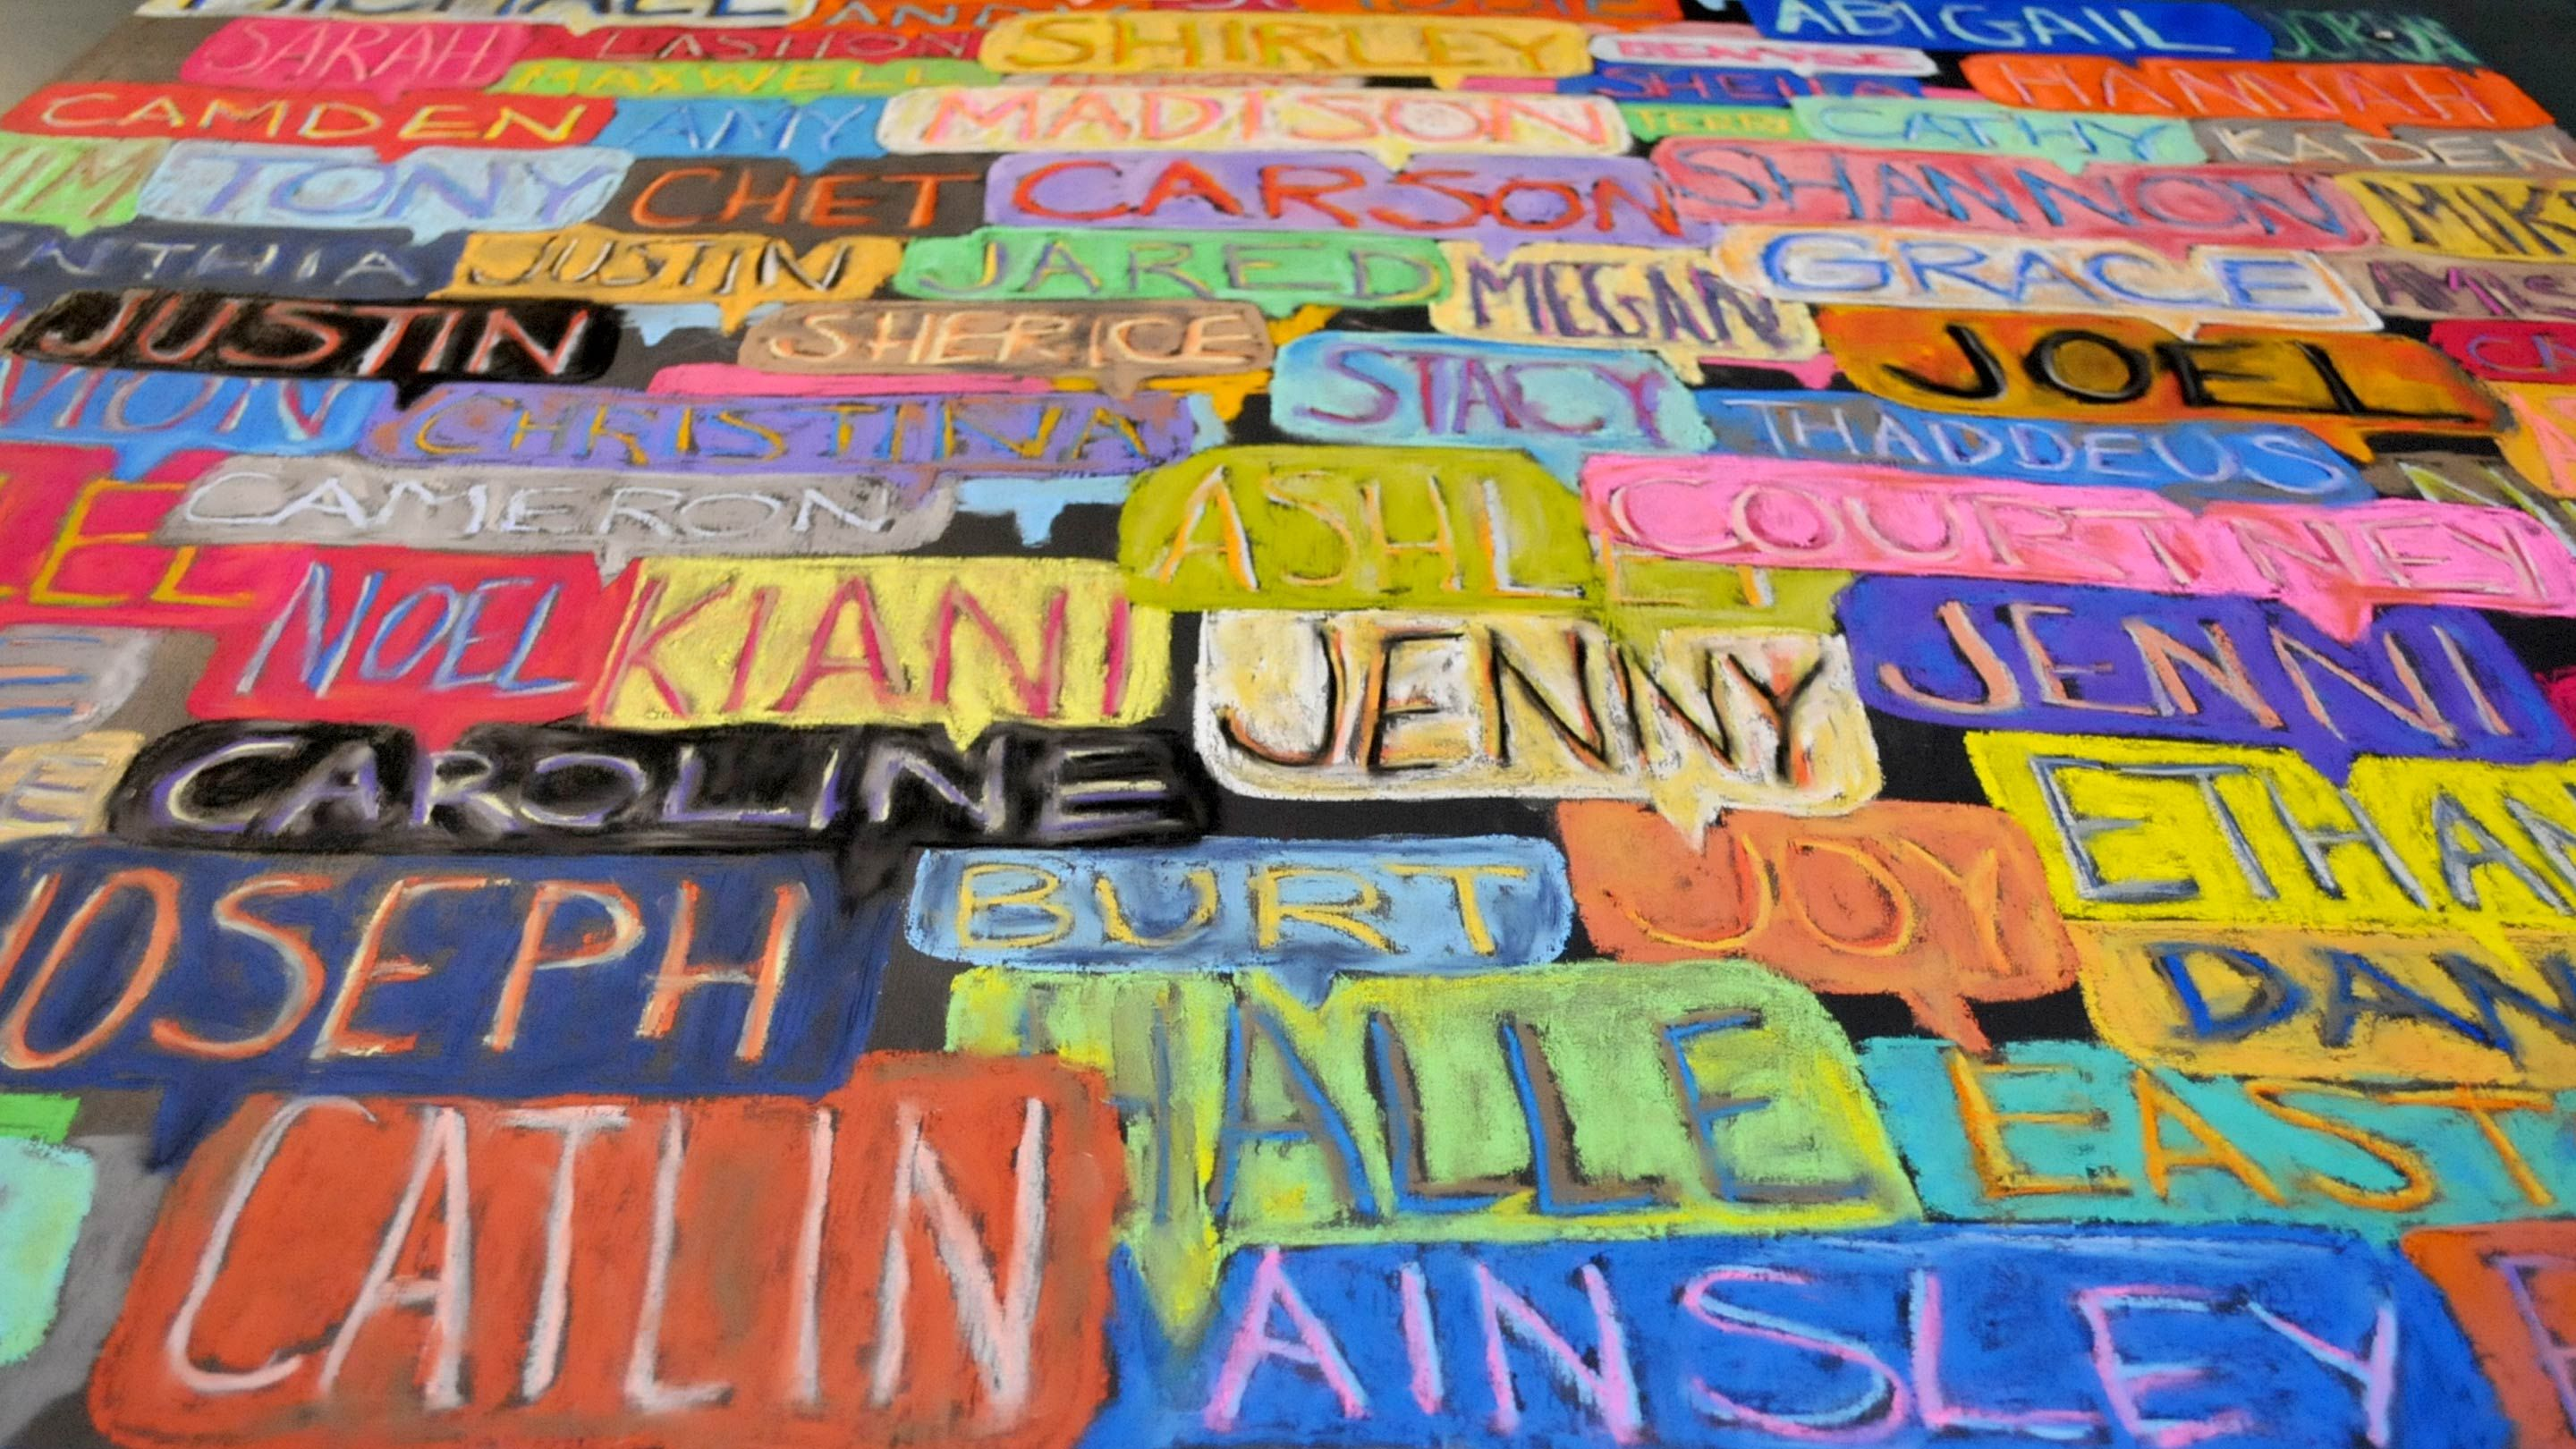 A chalkboard covered with student names in bright colors.